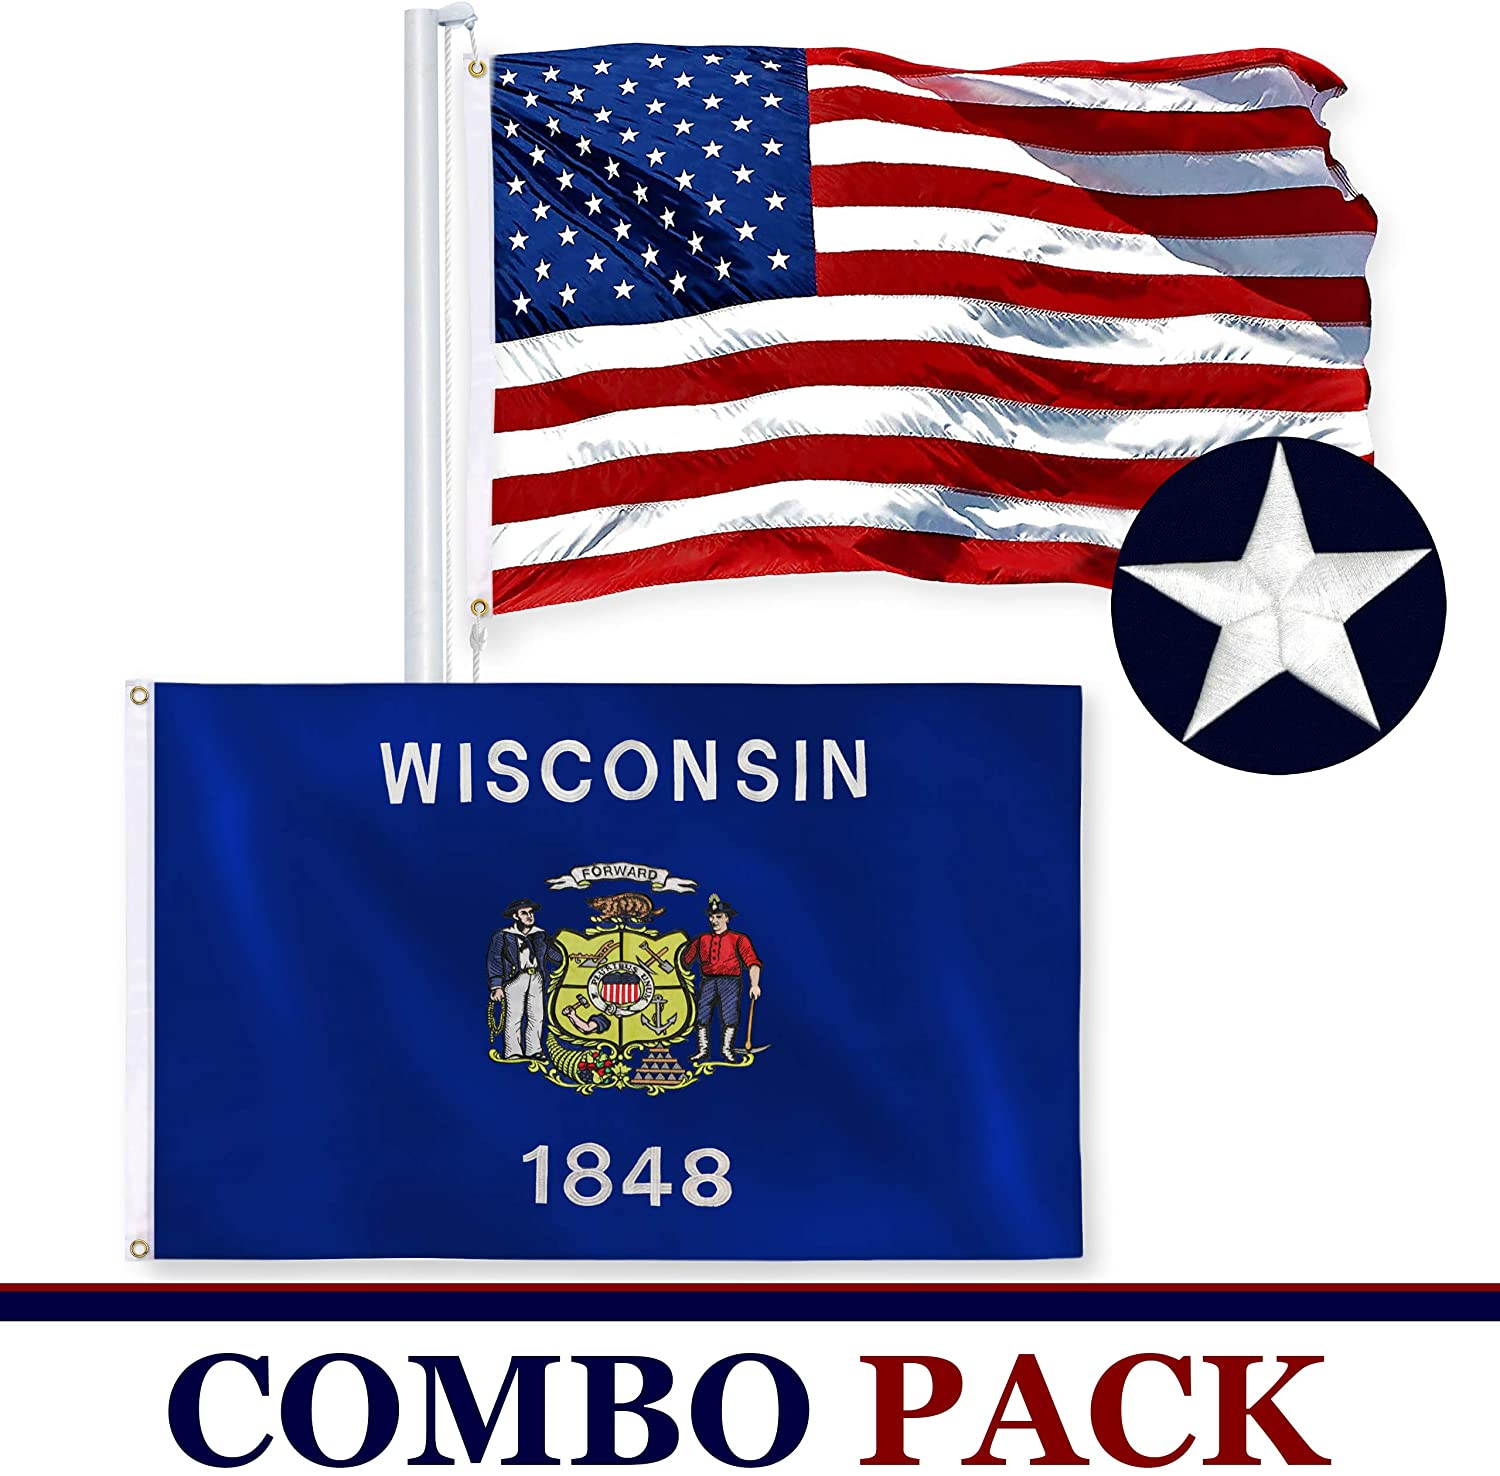 Wisconsin State Flag 210D Embroidered Polyester 3x5 Ft Double Sided 2ply